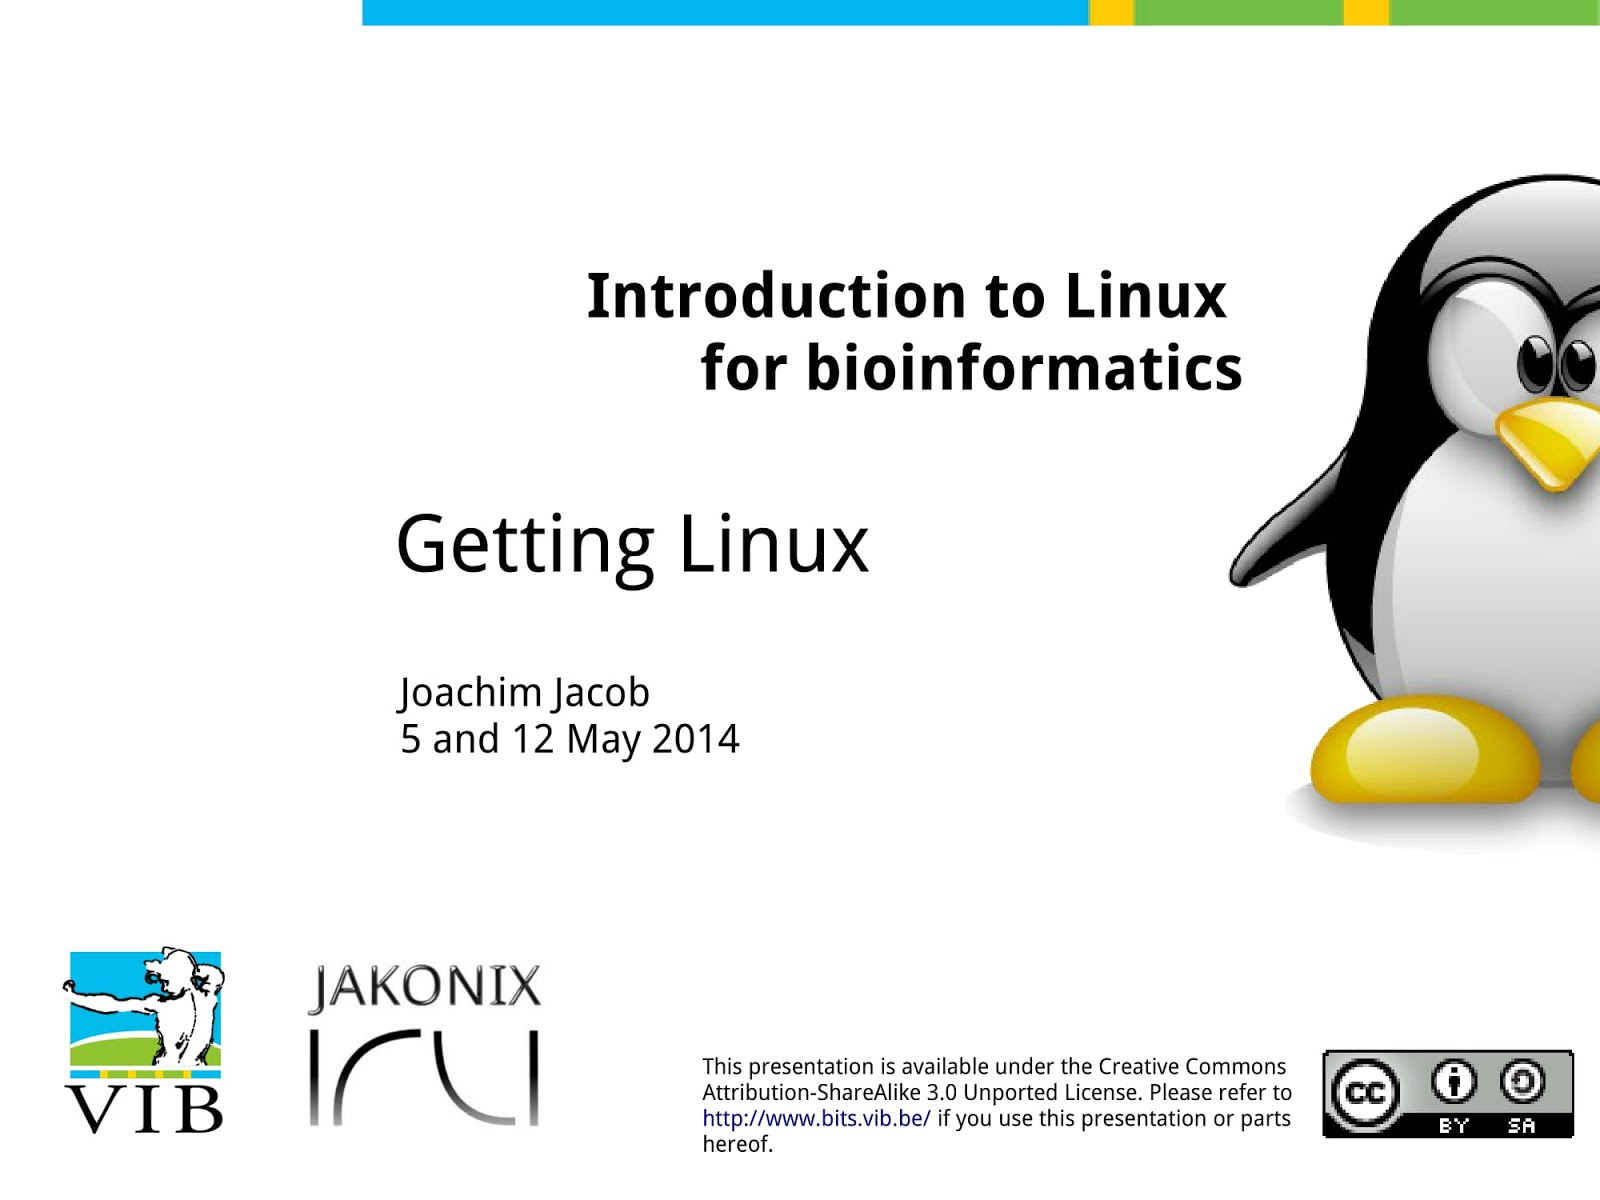 slideshow] Introduction to Linux for bioinformatics - Linux